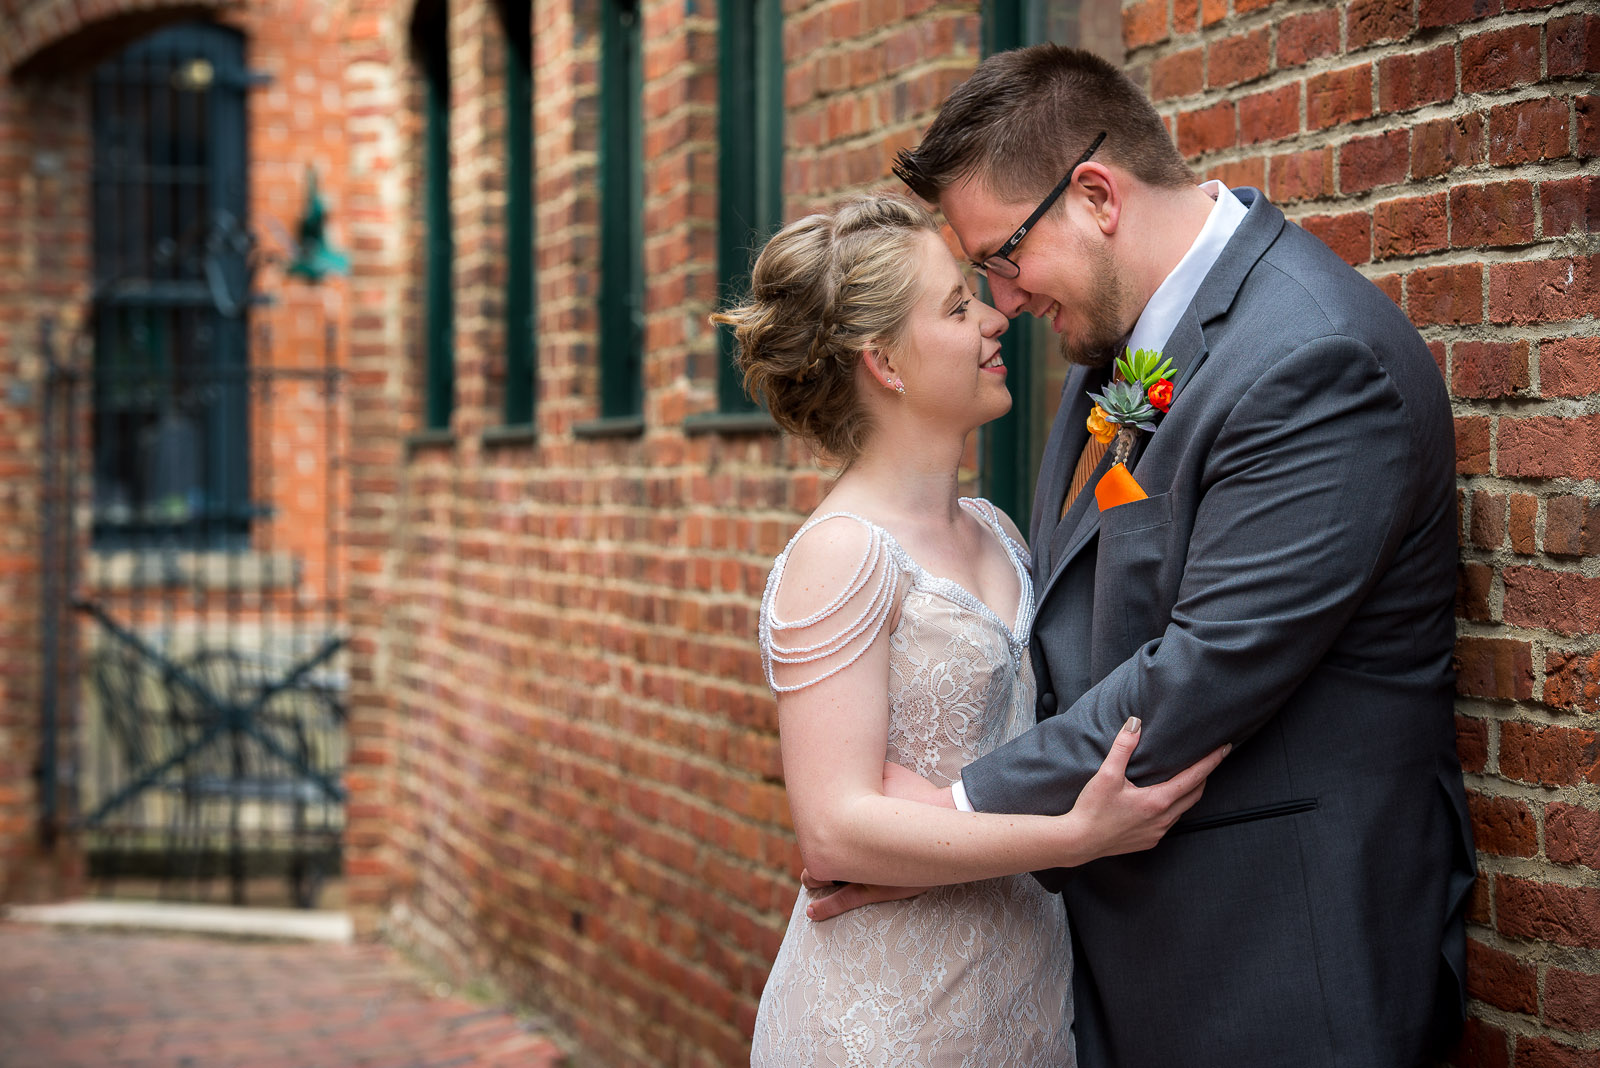 Eric_and_Christy_Photography_Blog_2016_Best_Wedding_Portraits-13